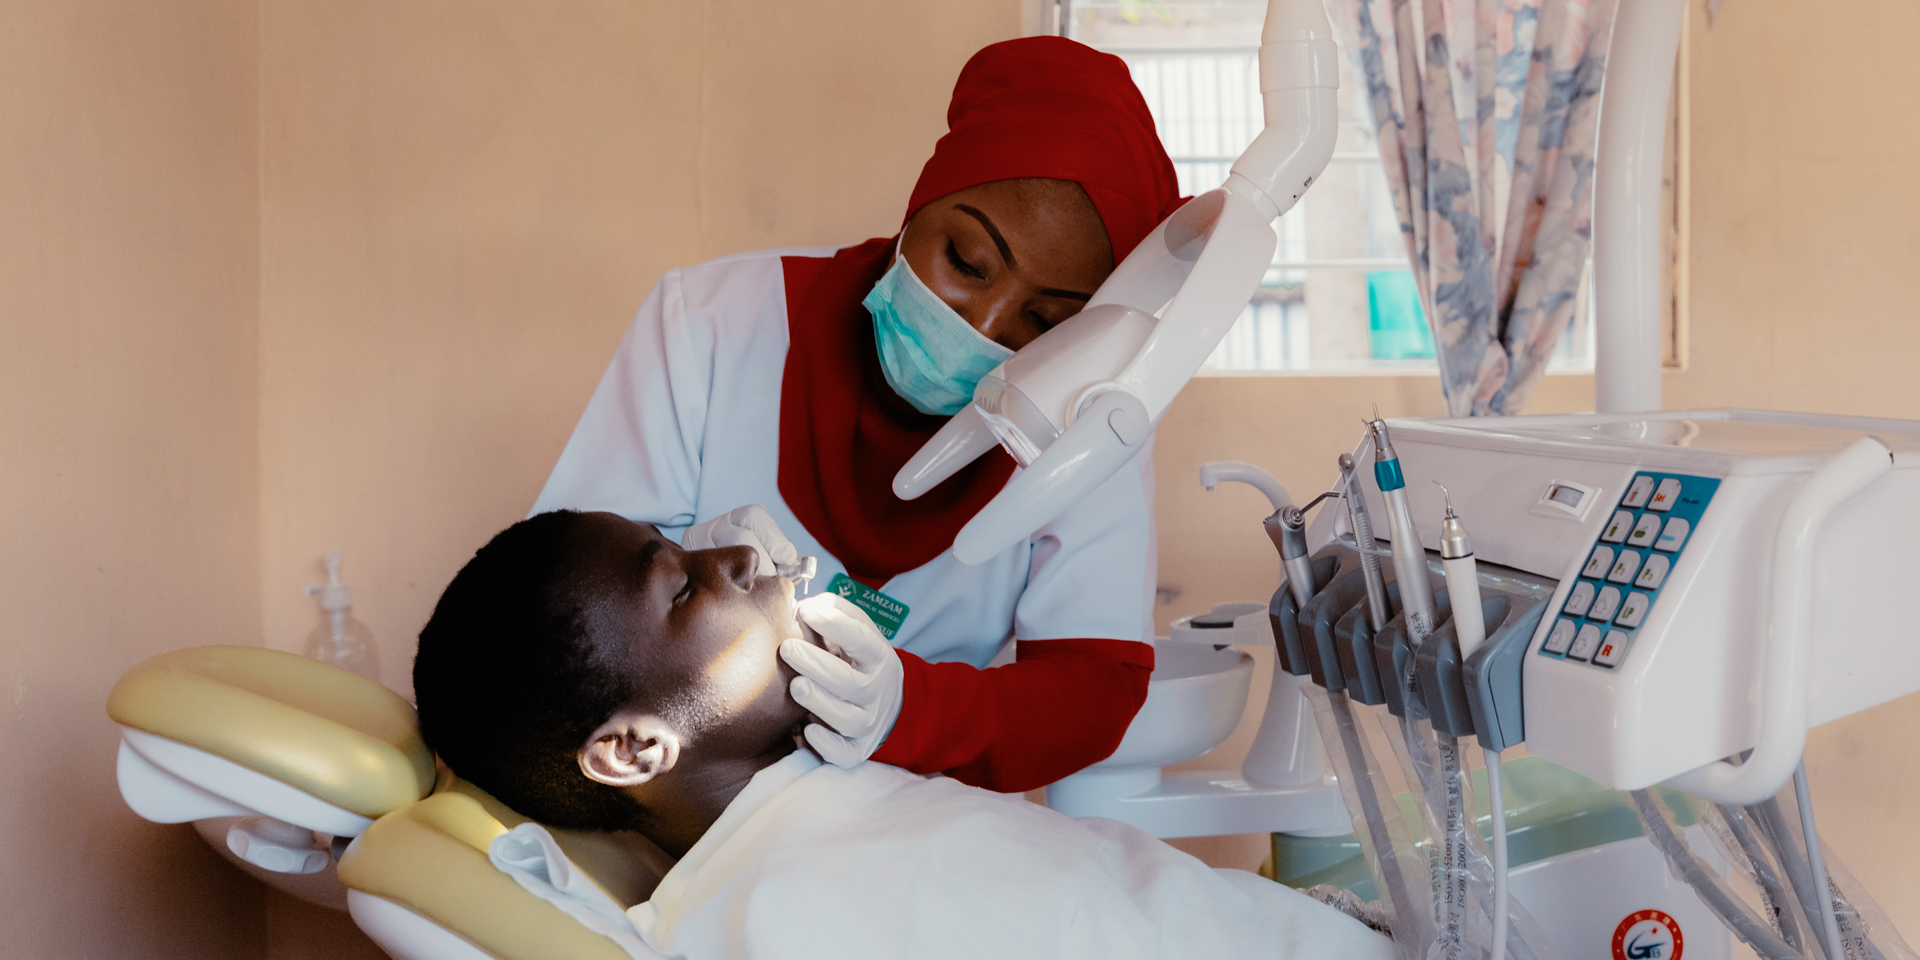 Finding new ways to lend more to health SMEs in Africa